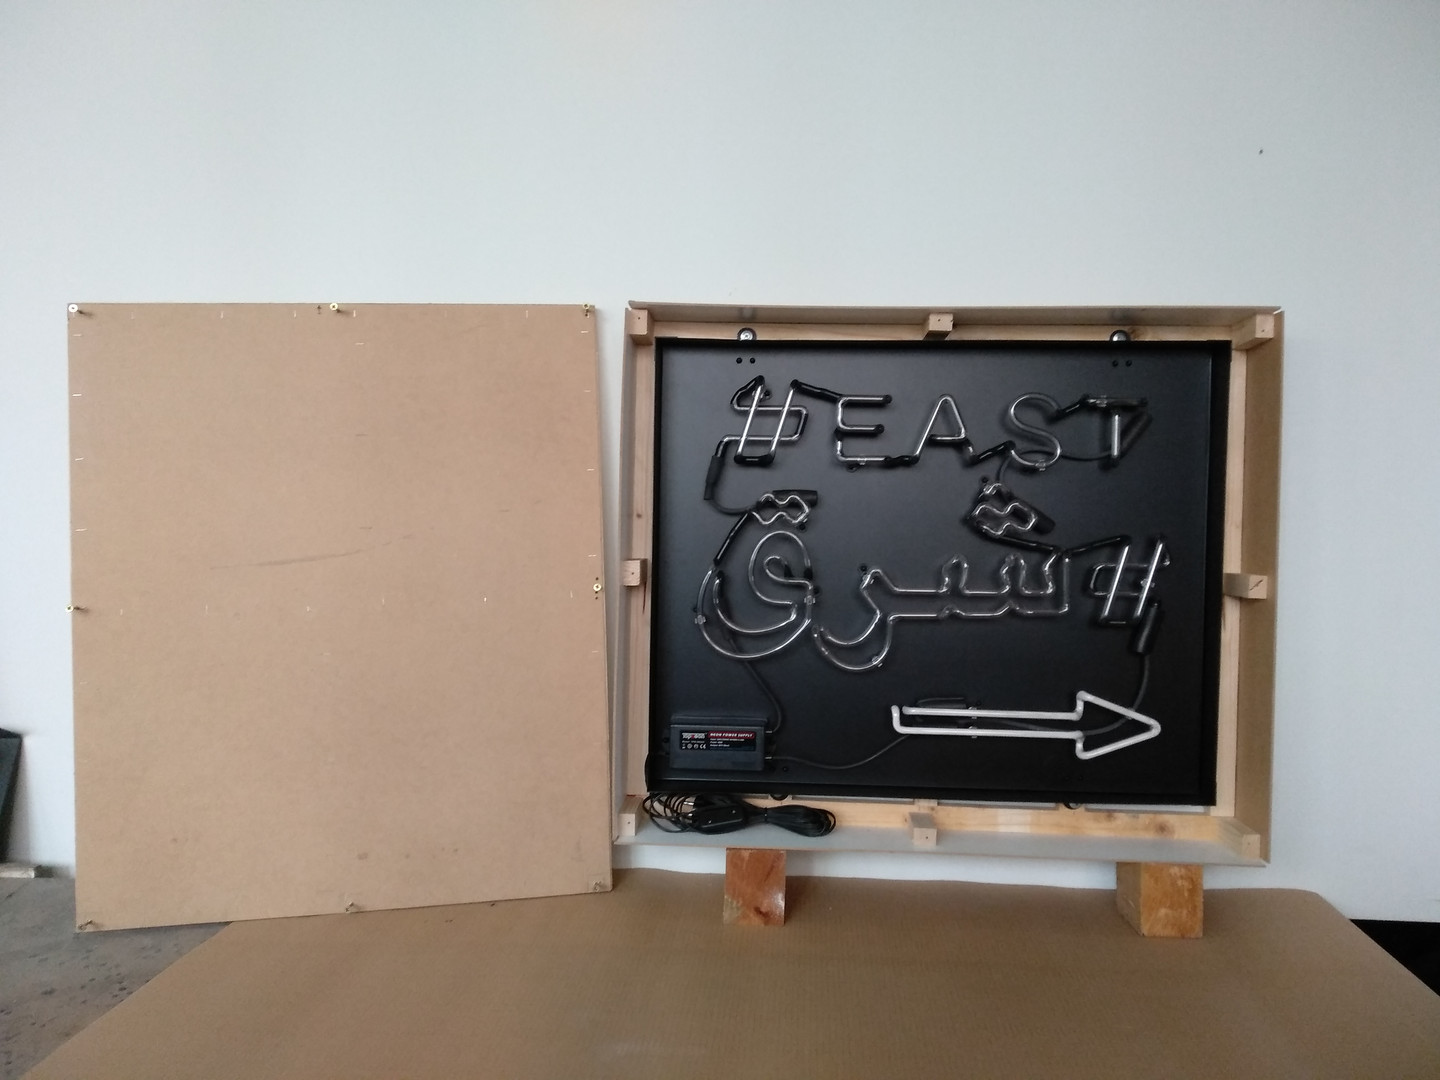 east neon sign in wooden box ready for shipment